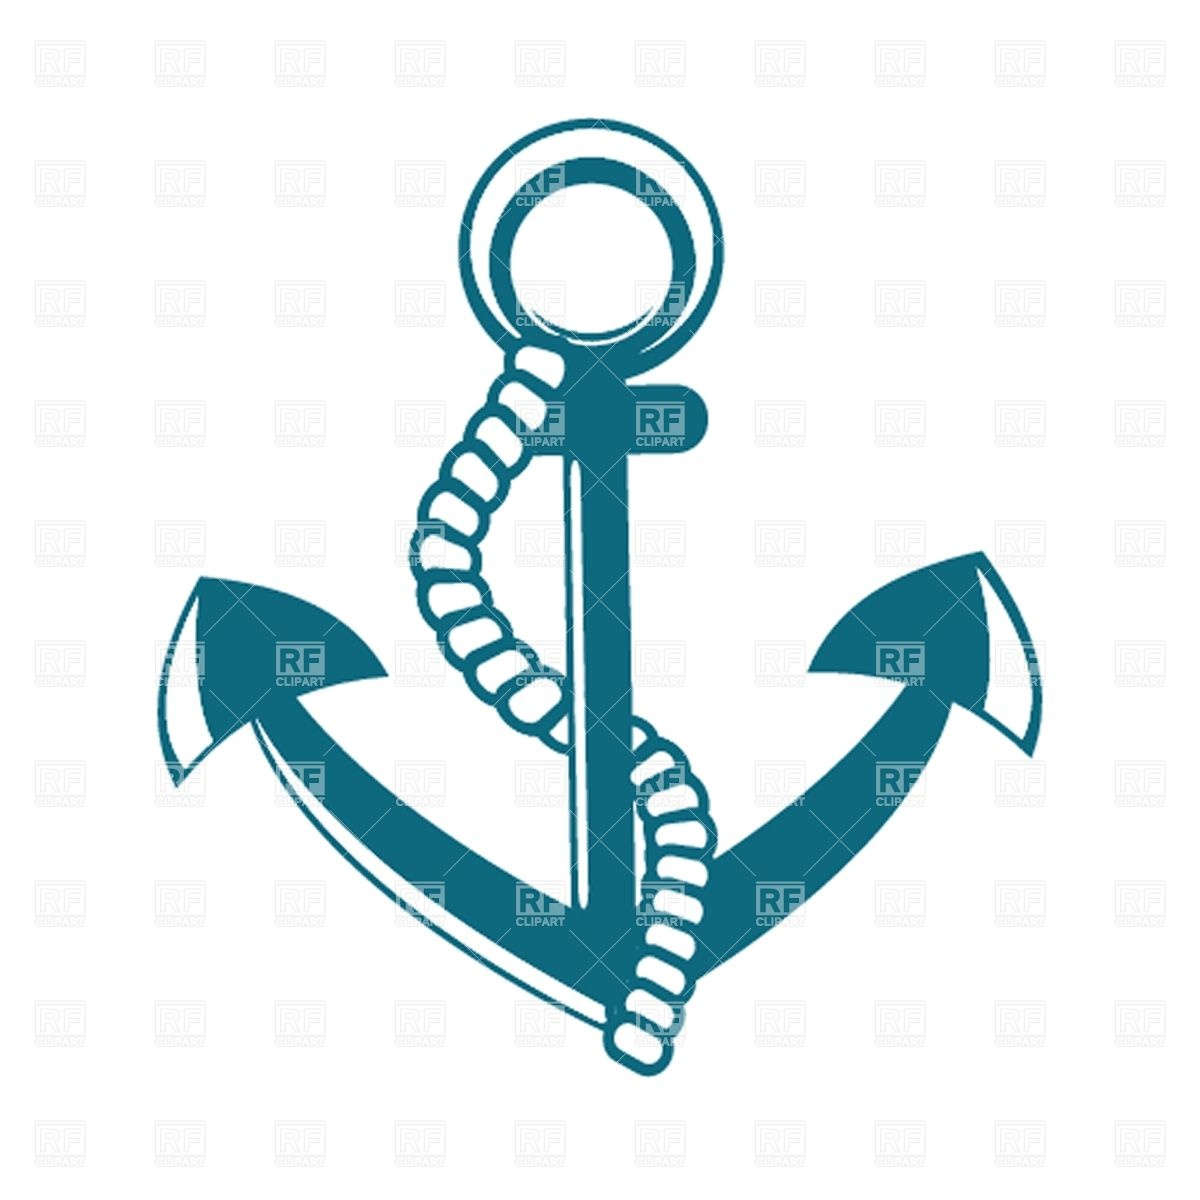 Navy clipart anchor rope #7